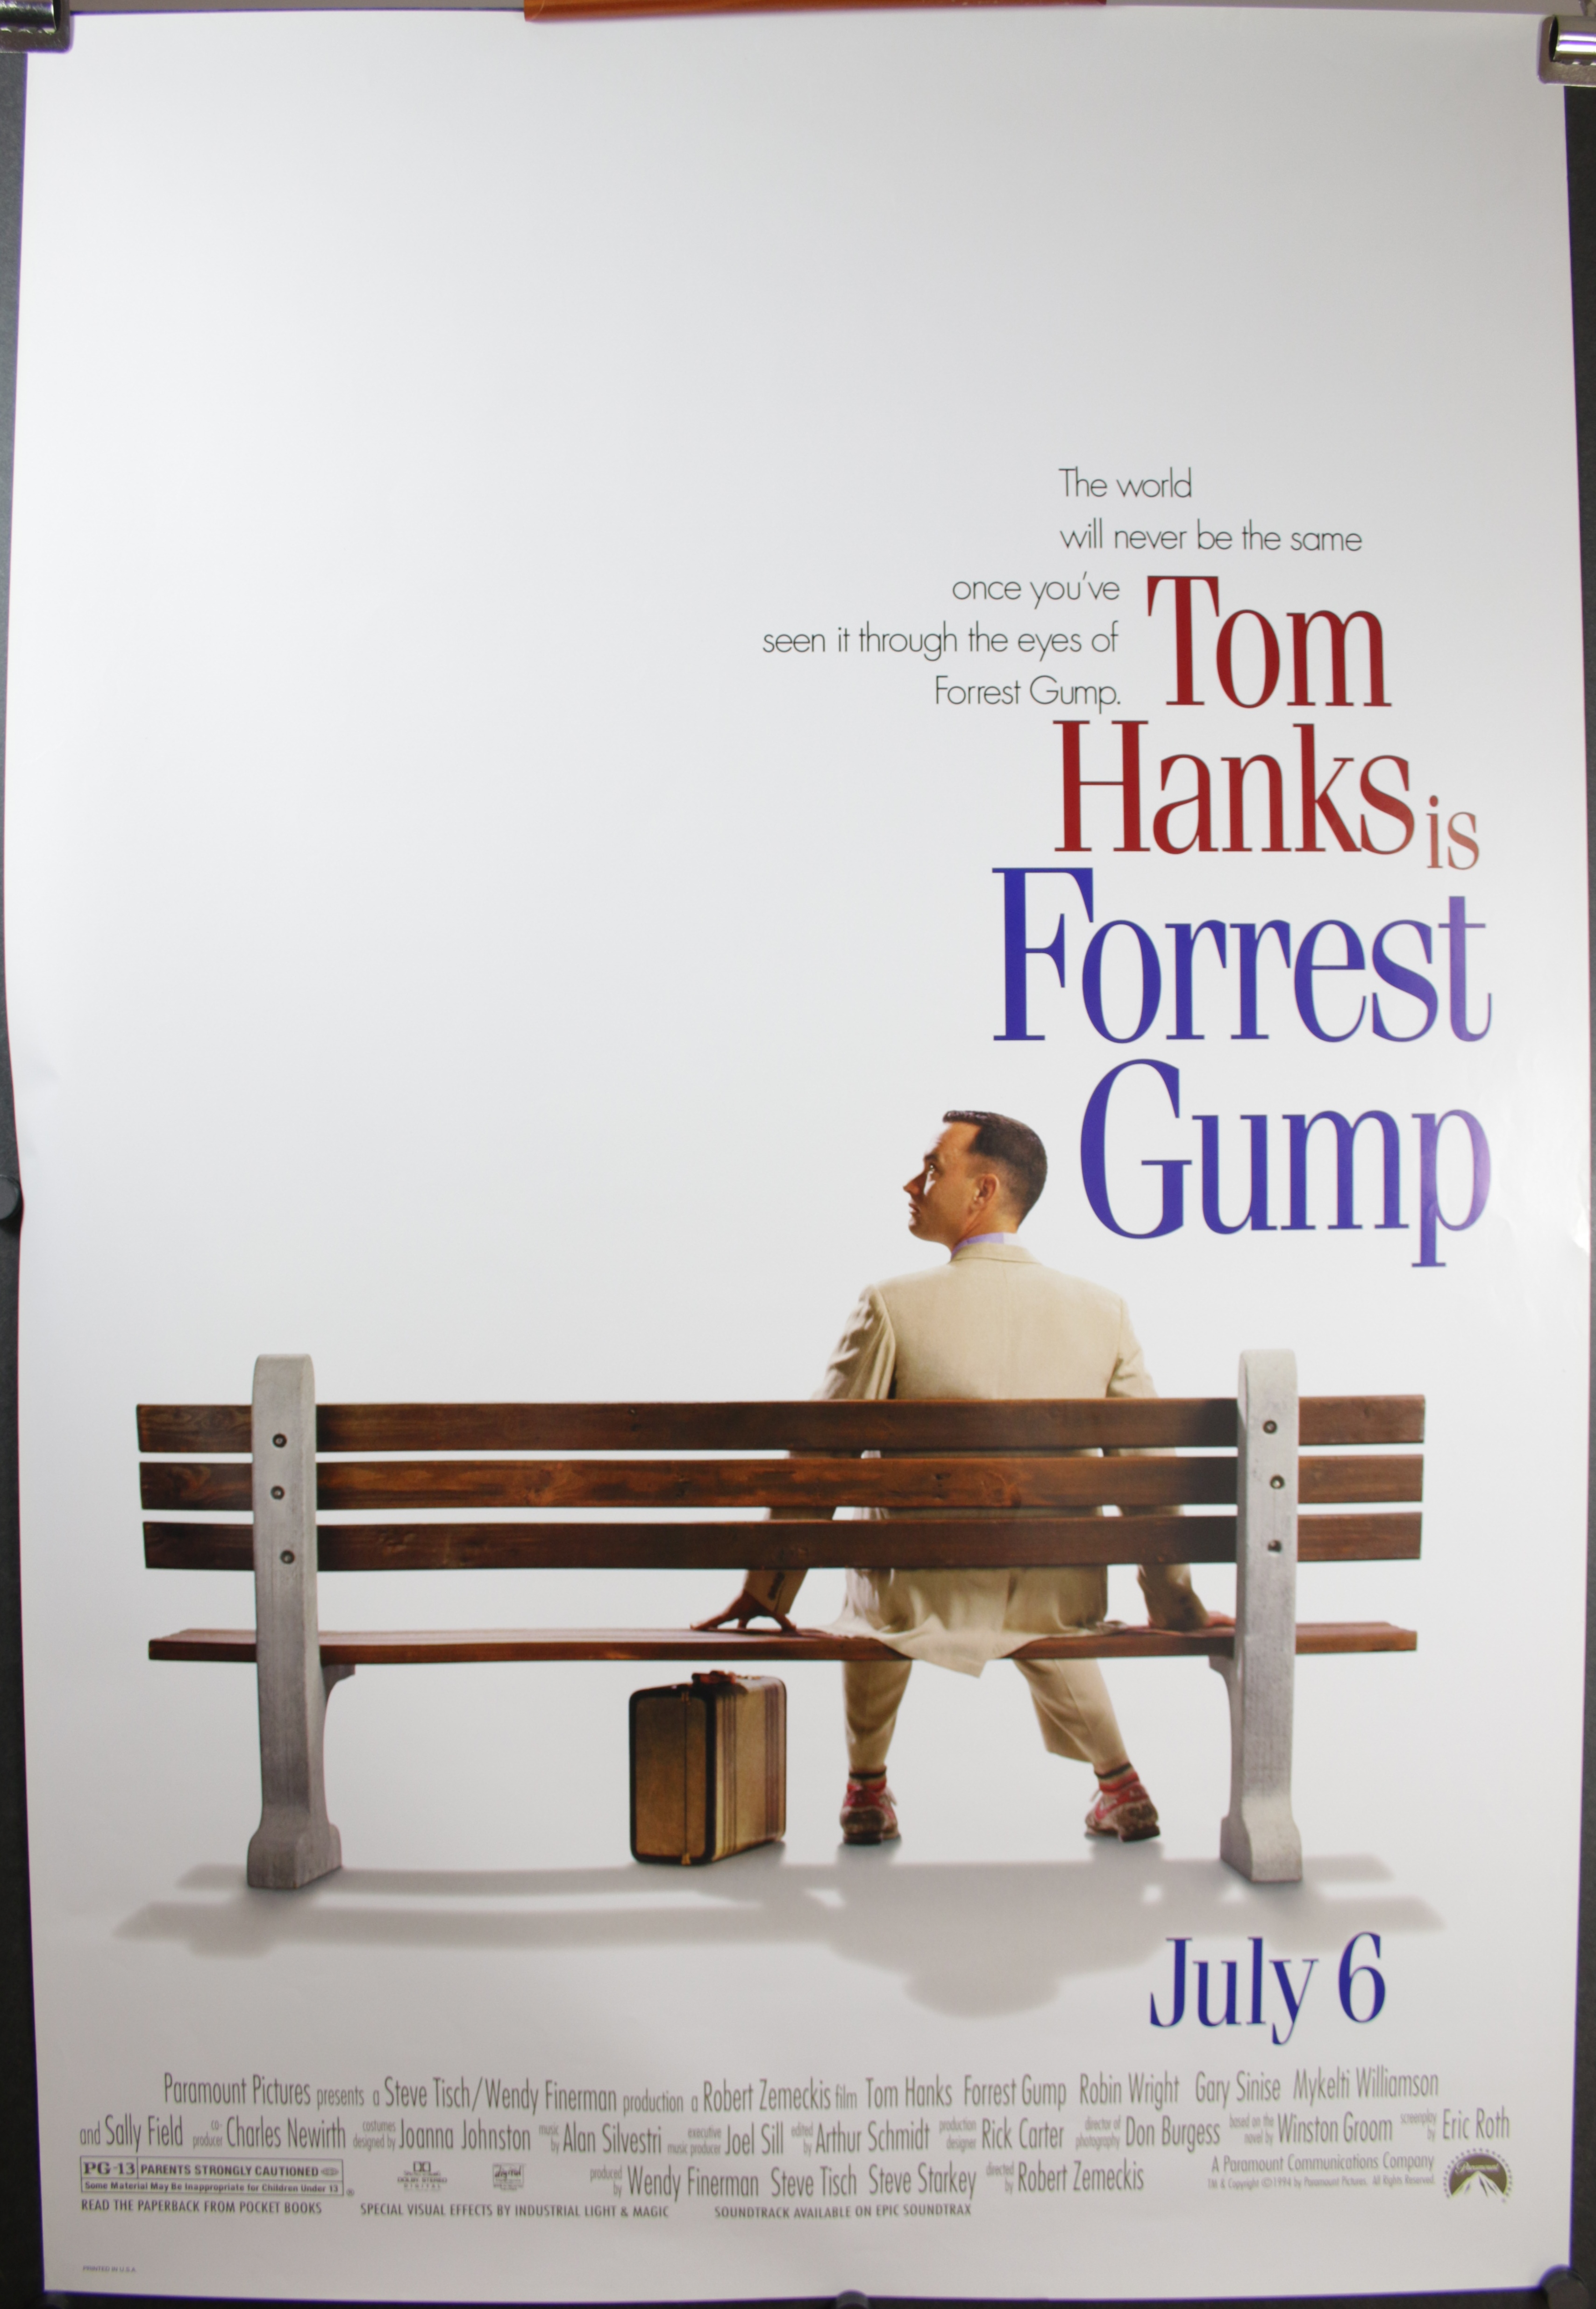 essay forrest gump movie Free essays on review forrest gump movie use our research documents to help you learn 426 - 450.